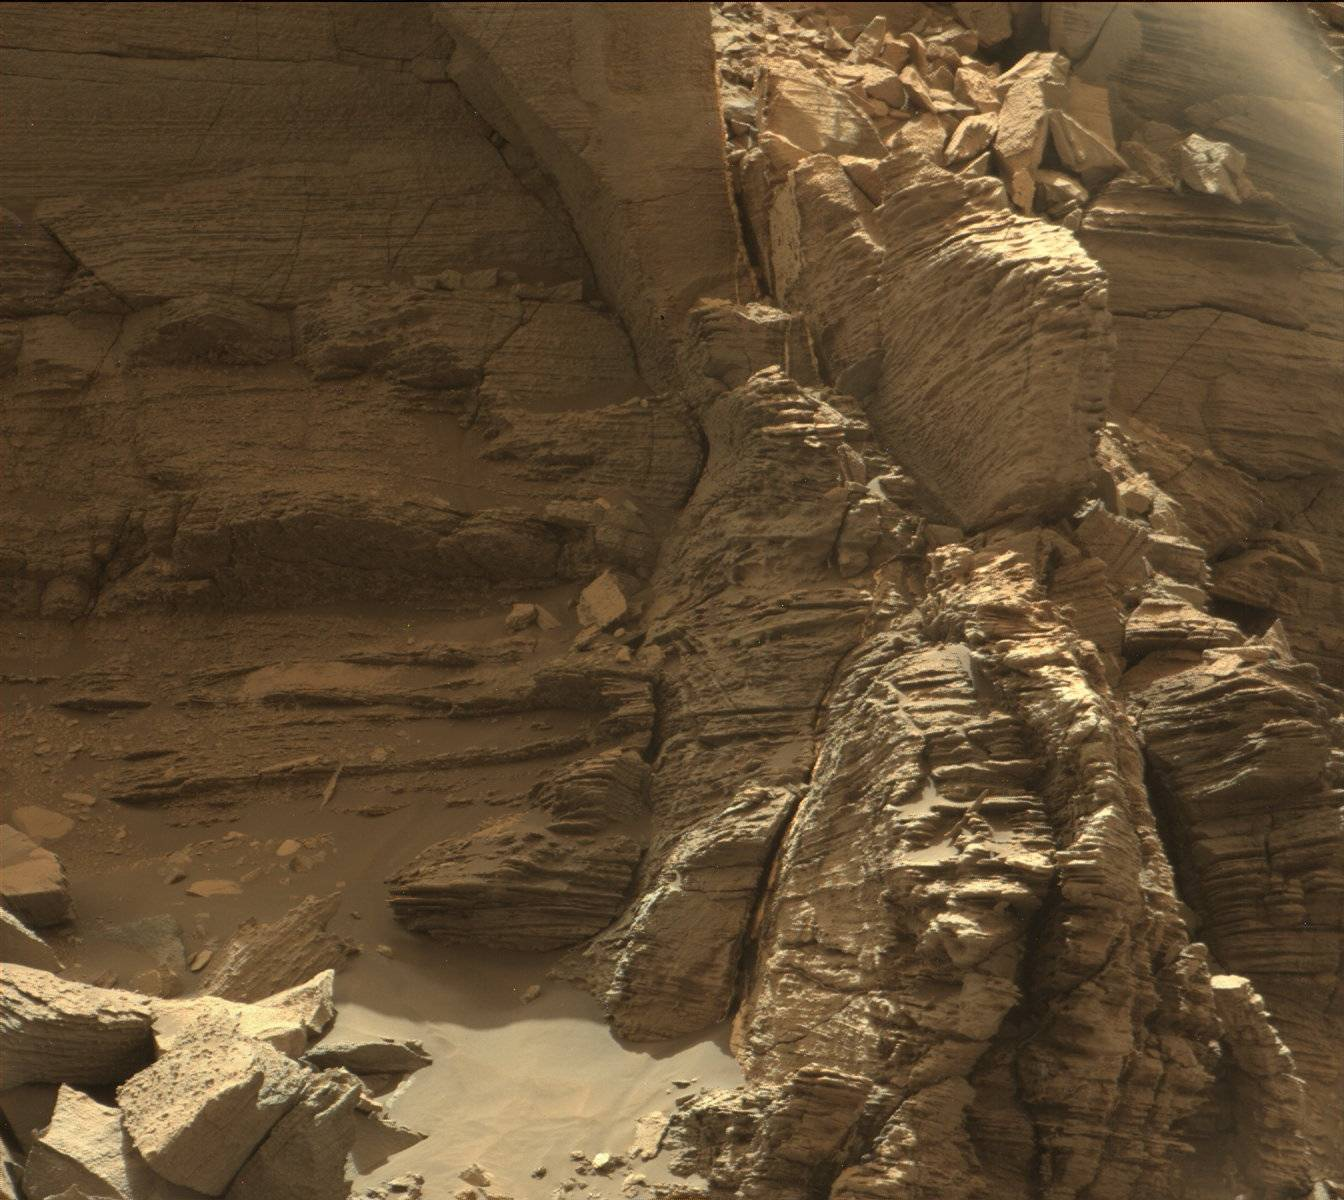 Mars Rover Views Spectacular Layered Rock Formations ...